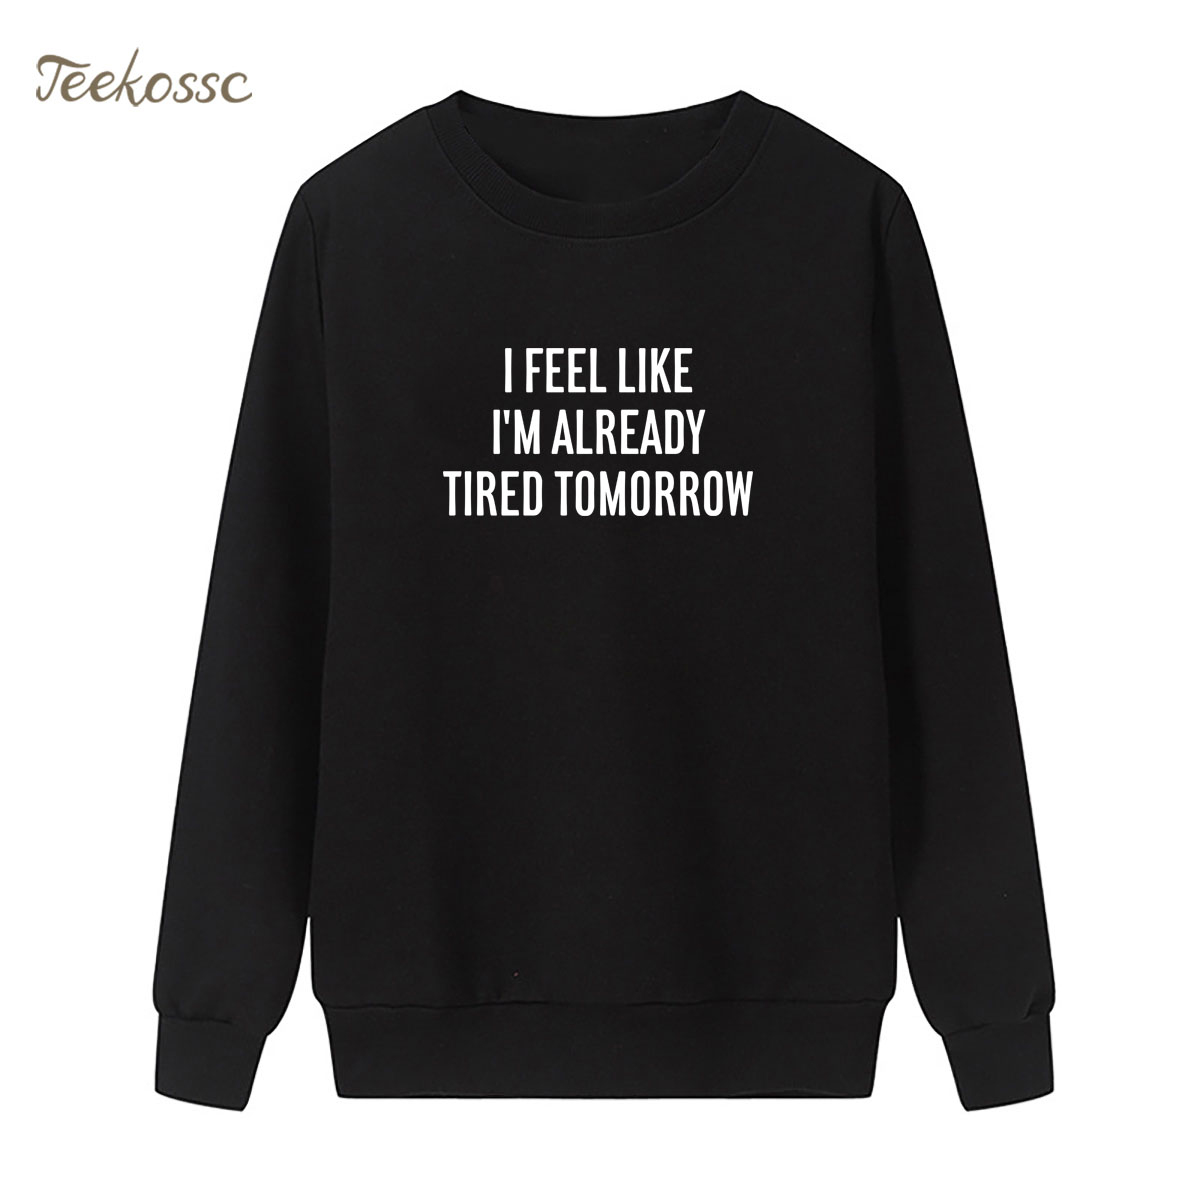 I feel like i'm already tired tomorrow Sweatshirt Letters Print Hoodie Winter Autumn Women Lasdies Fleece Black White Streetwear